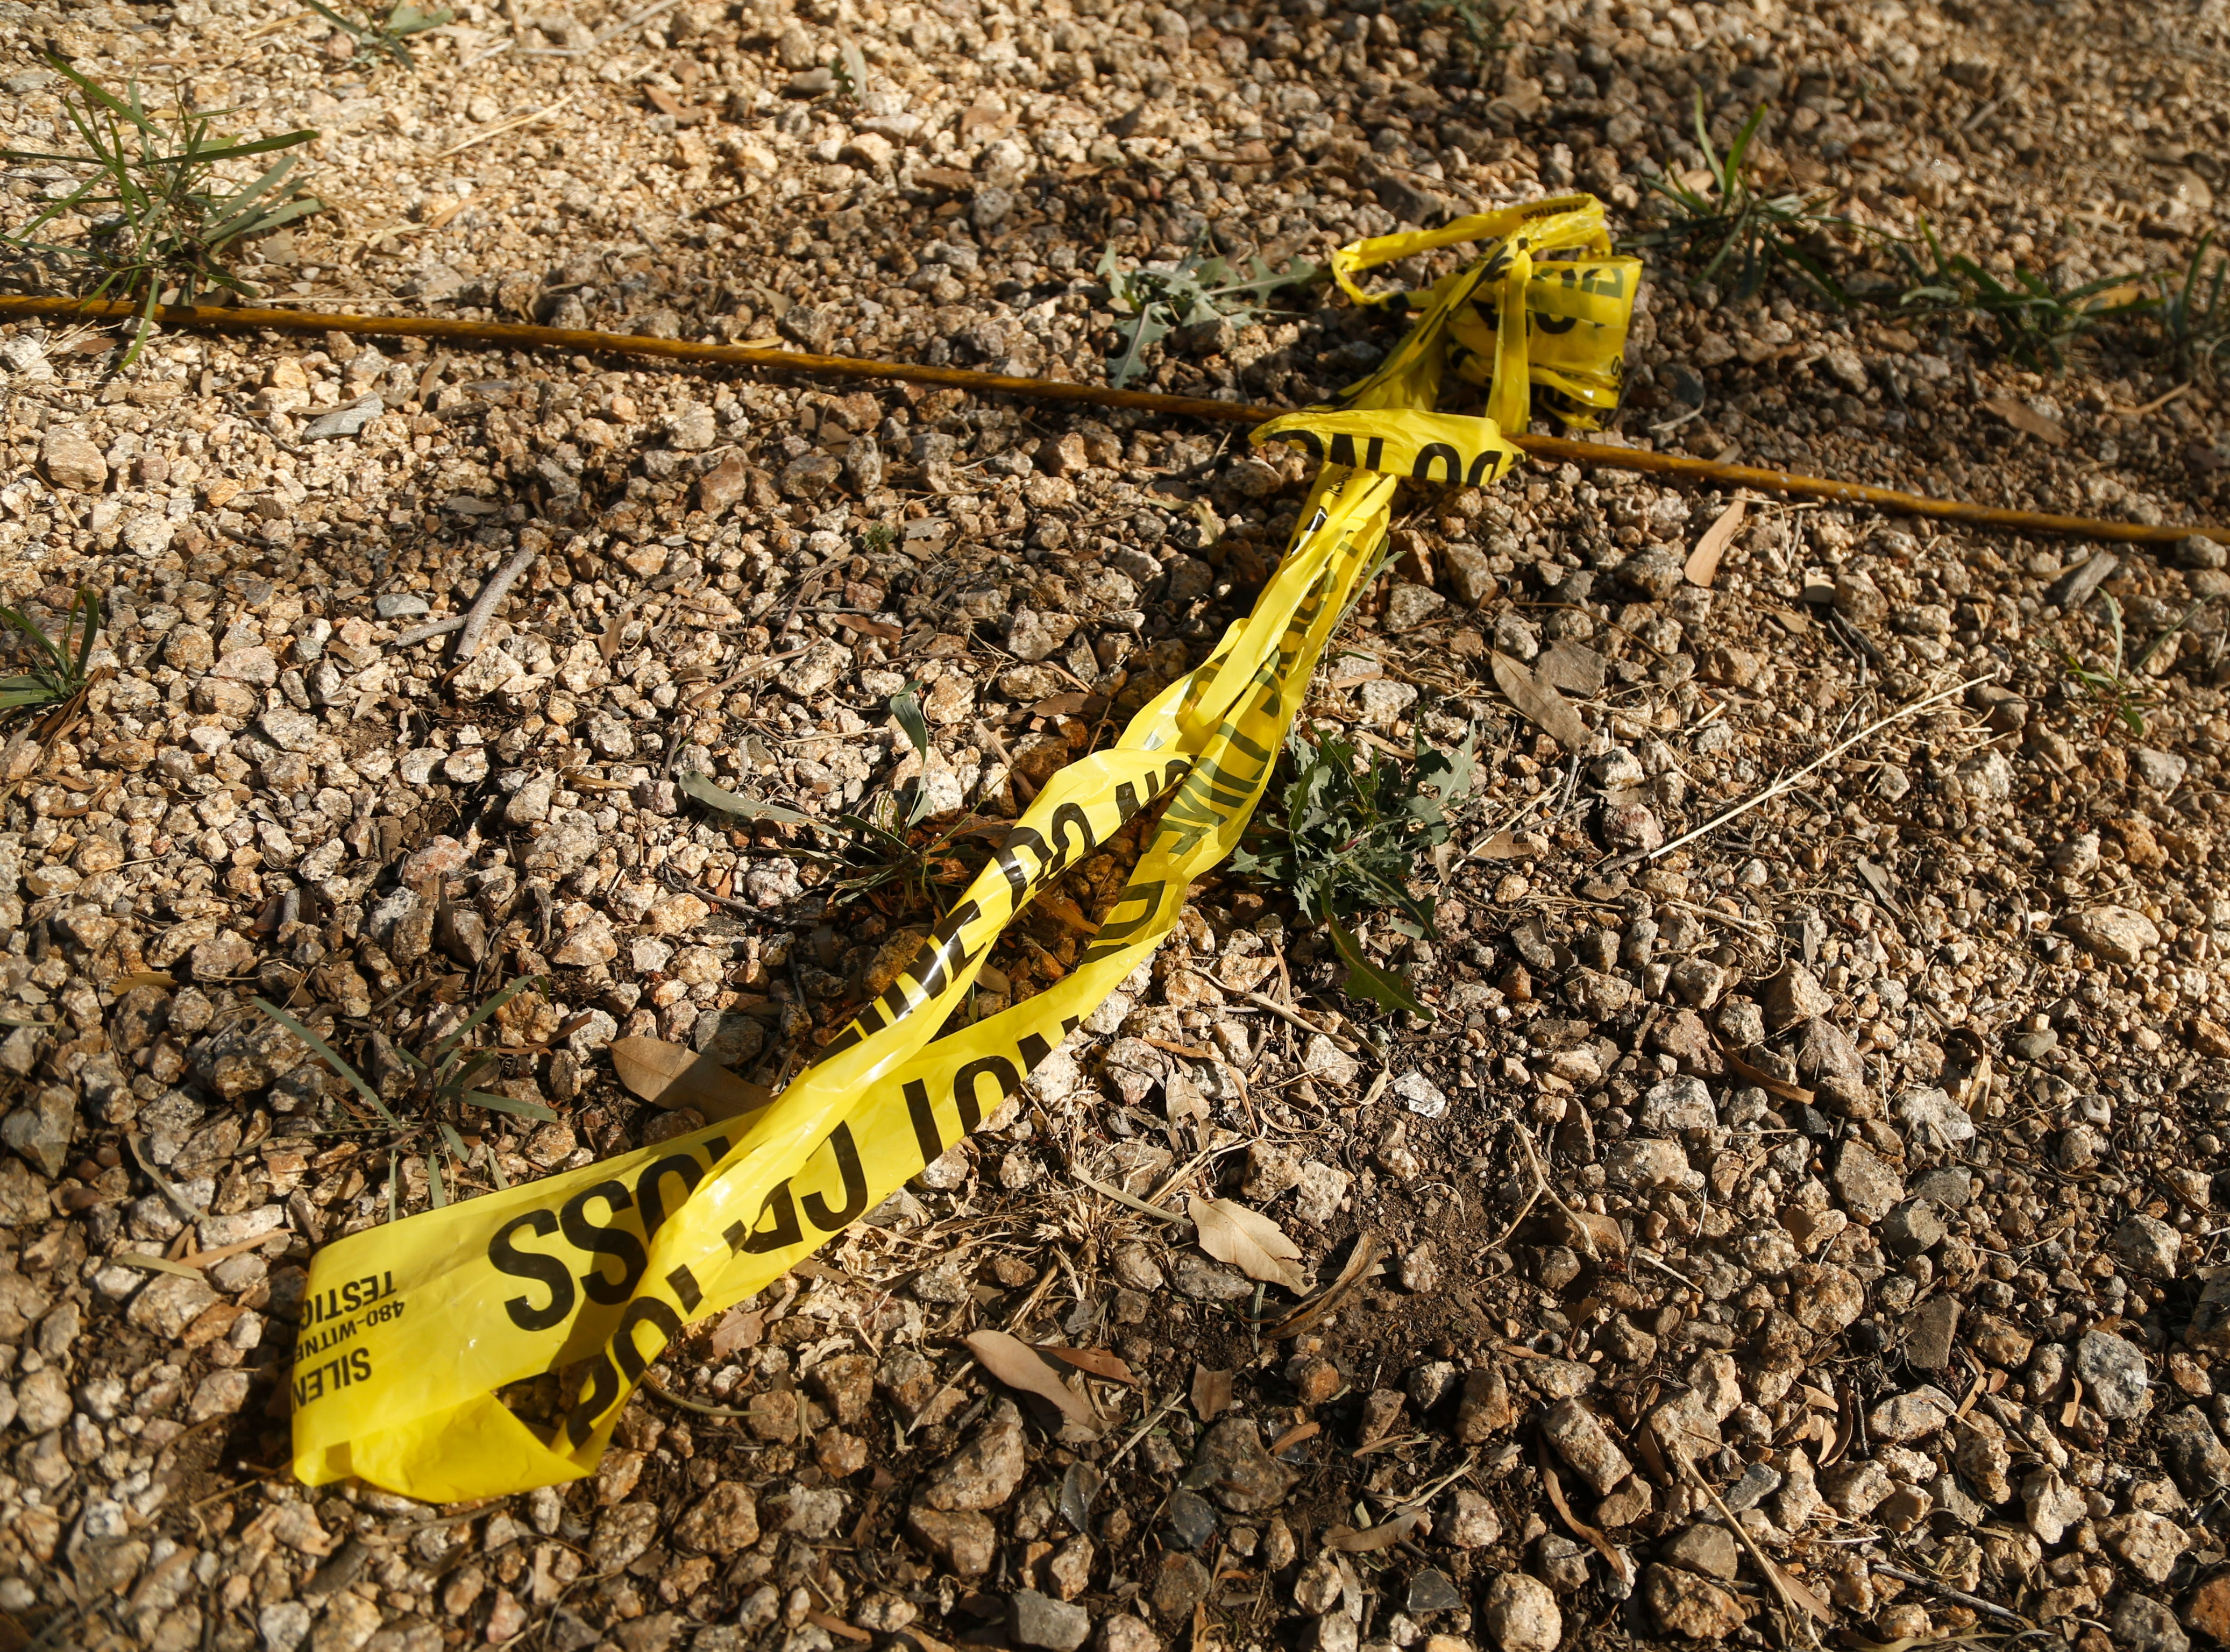 Police tape on the ground near the scene where a 10-year-old girl was shot and killed after an unexpected incident possibly involving road rage in Phoenix, Ariz., on April 3, 2019.